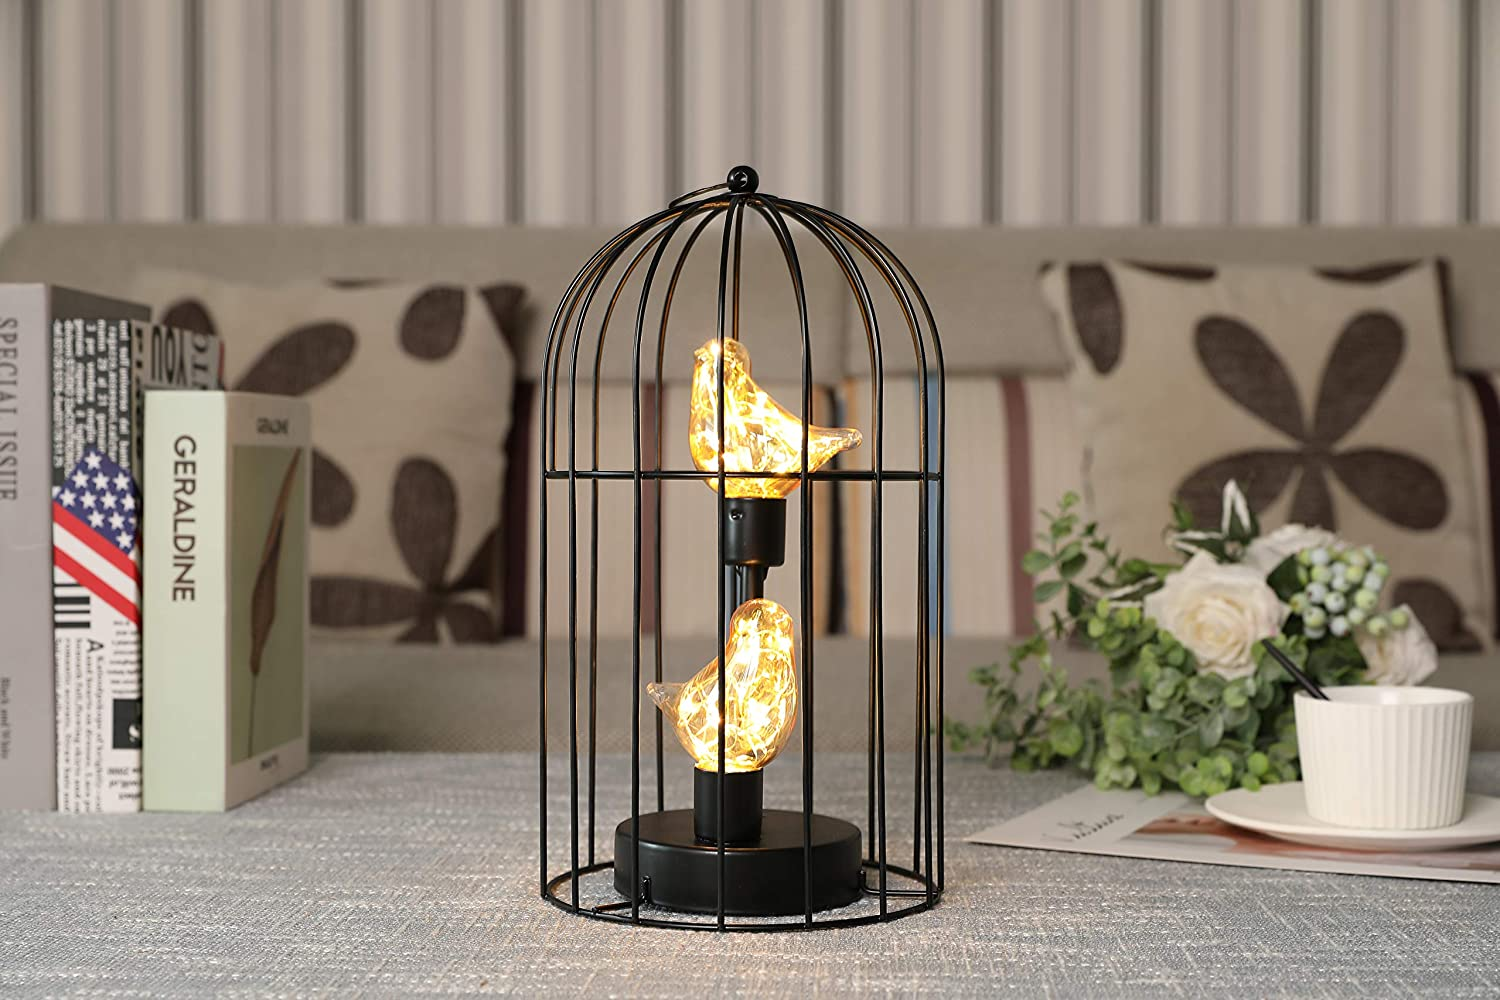 JHY DESIGN Birdcage Decorative Lamp Battery Operated 12 Tall Cordless Accent Light with Warm White Fairy Lights Bird Bulb for Living Room Bedroom Kitchen Wedding Xmas Black